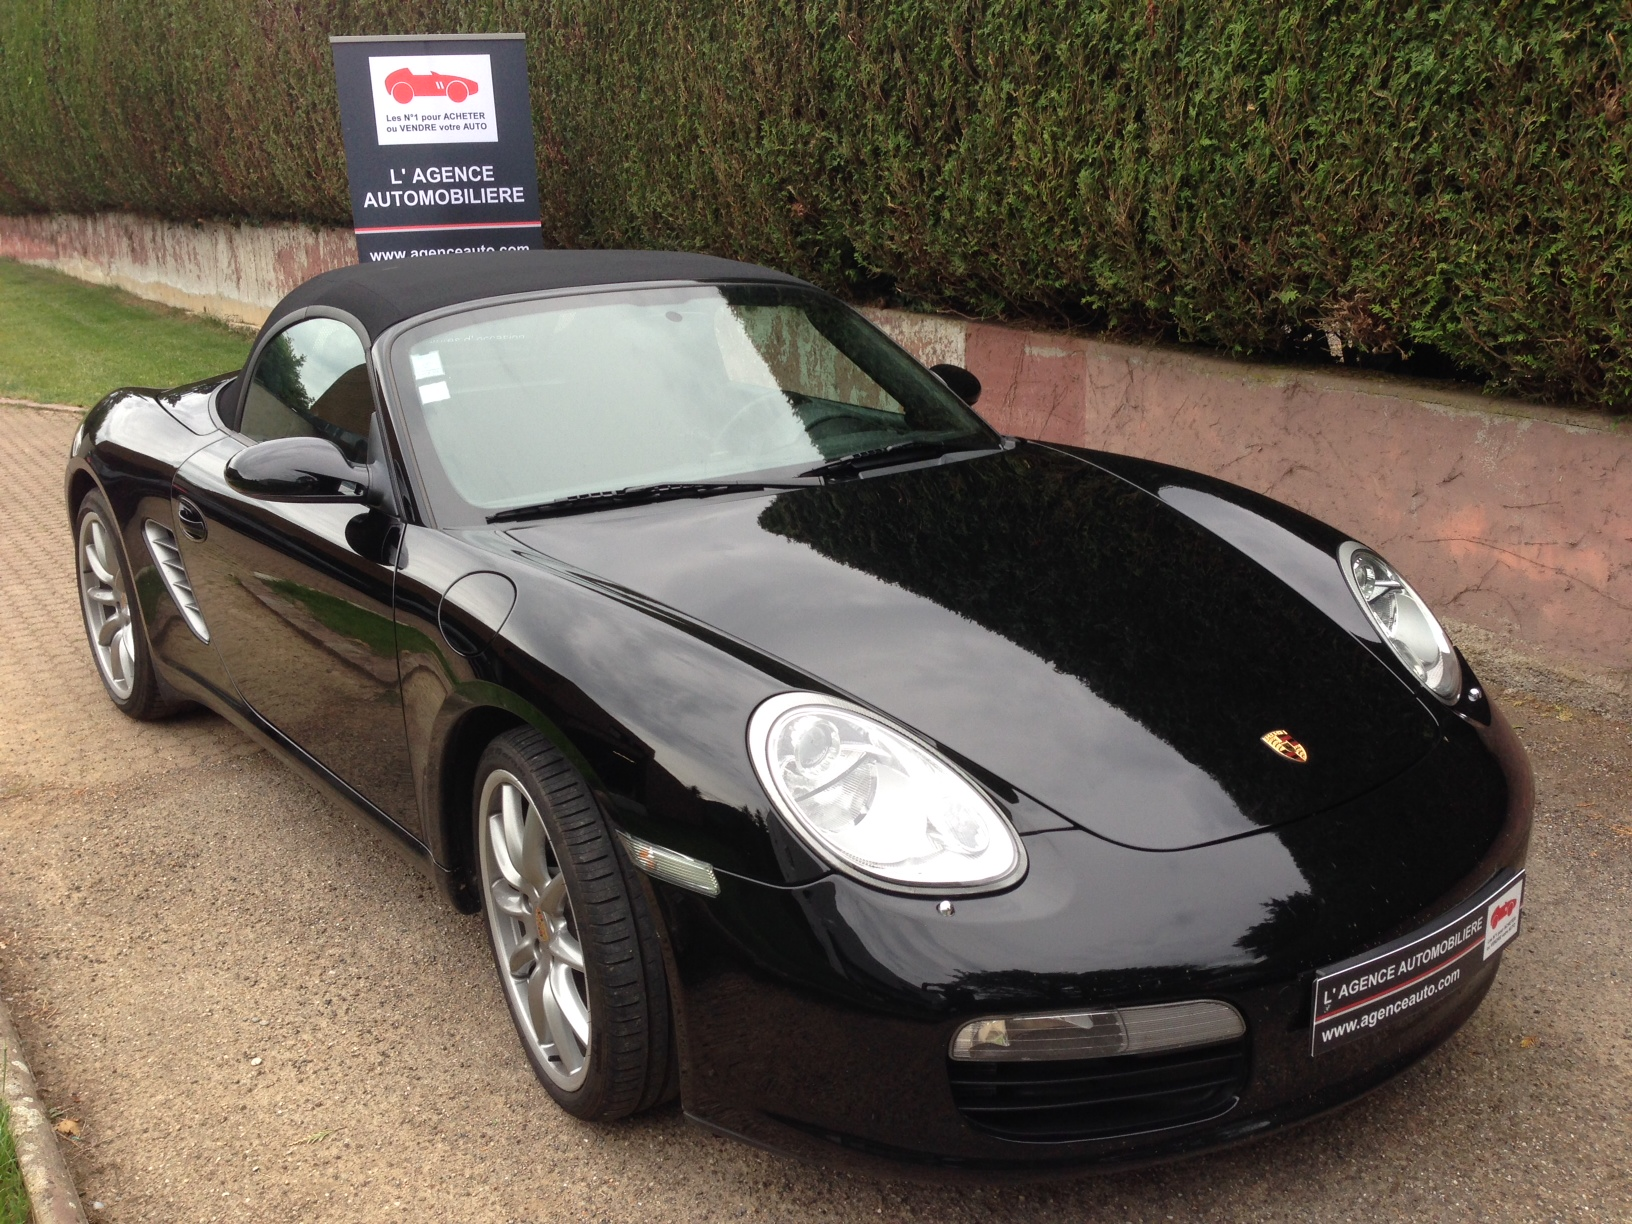 porsche boxster 2 7 987 phase ii occasion mulhouse pas cher voiture occasion haut rhin 68390. Black Bedroom Furniture Sets. Home Design Ideas